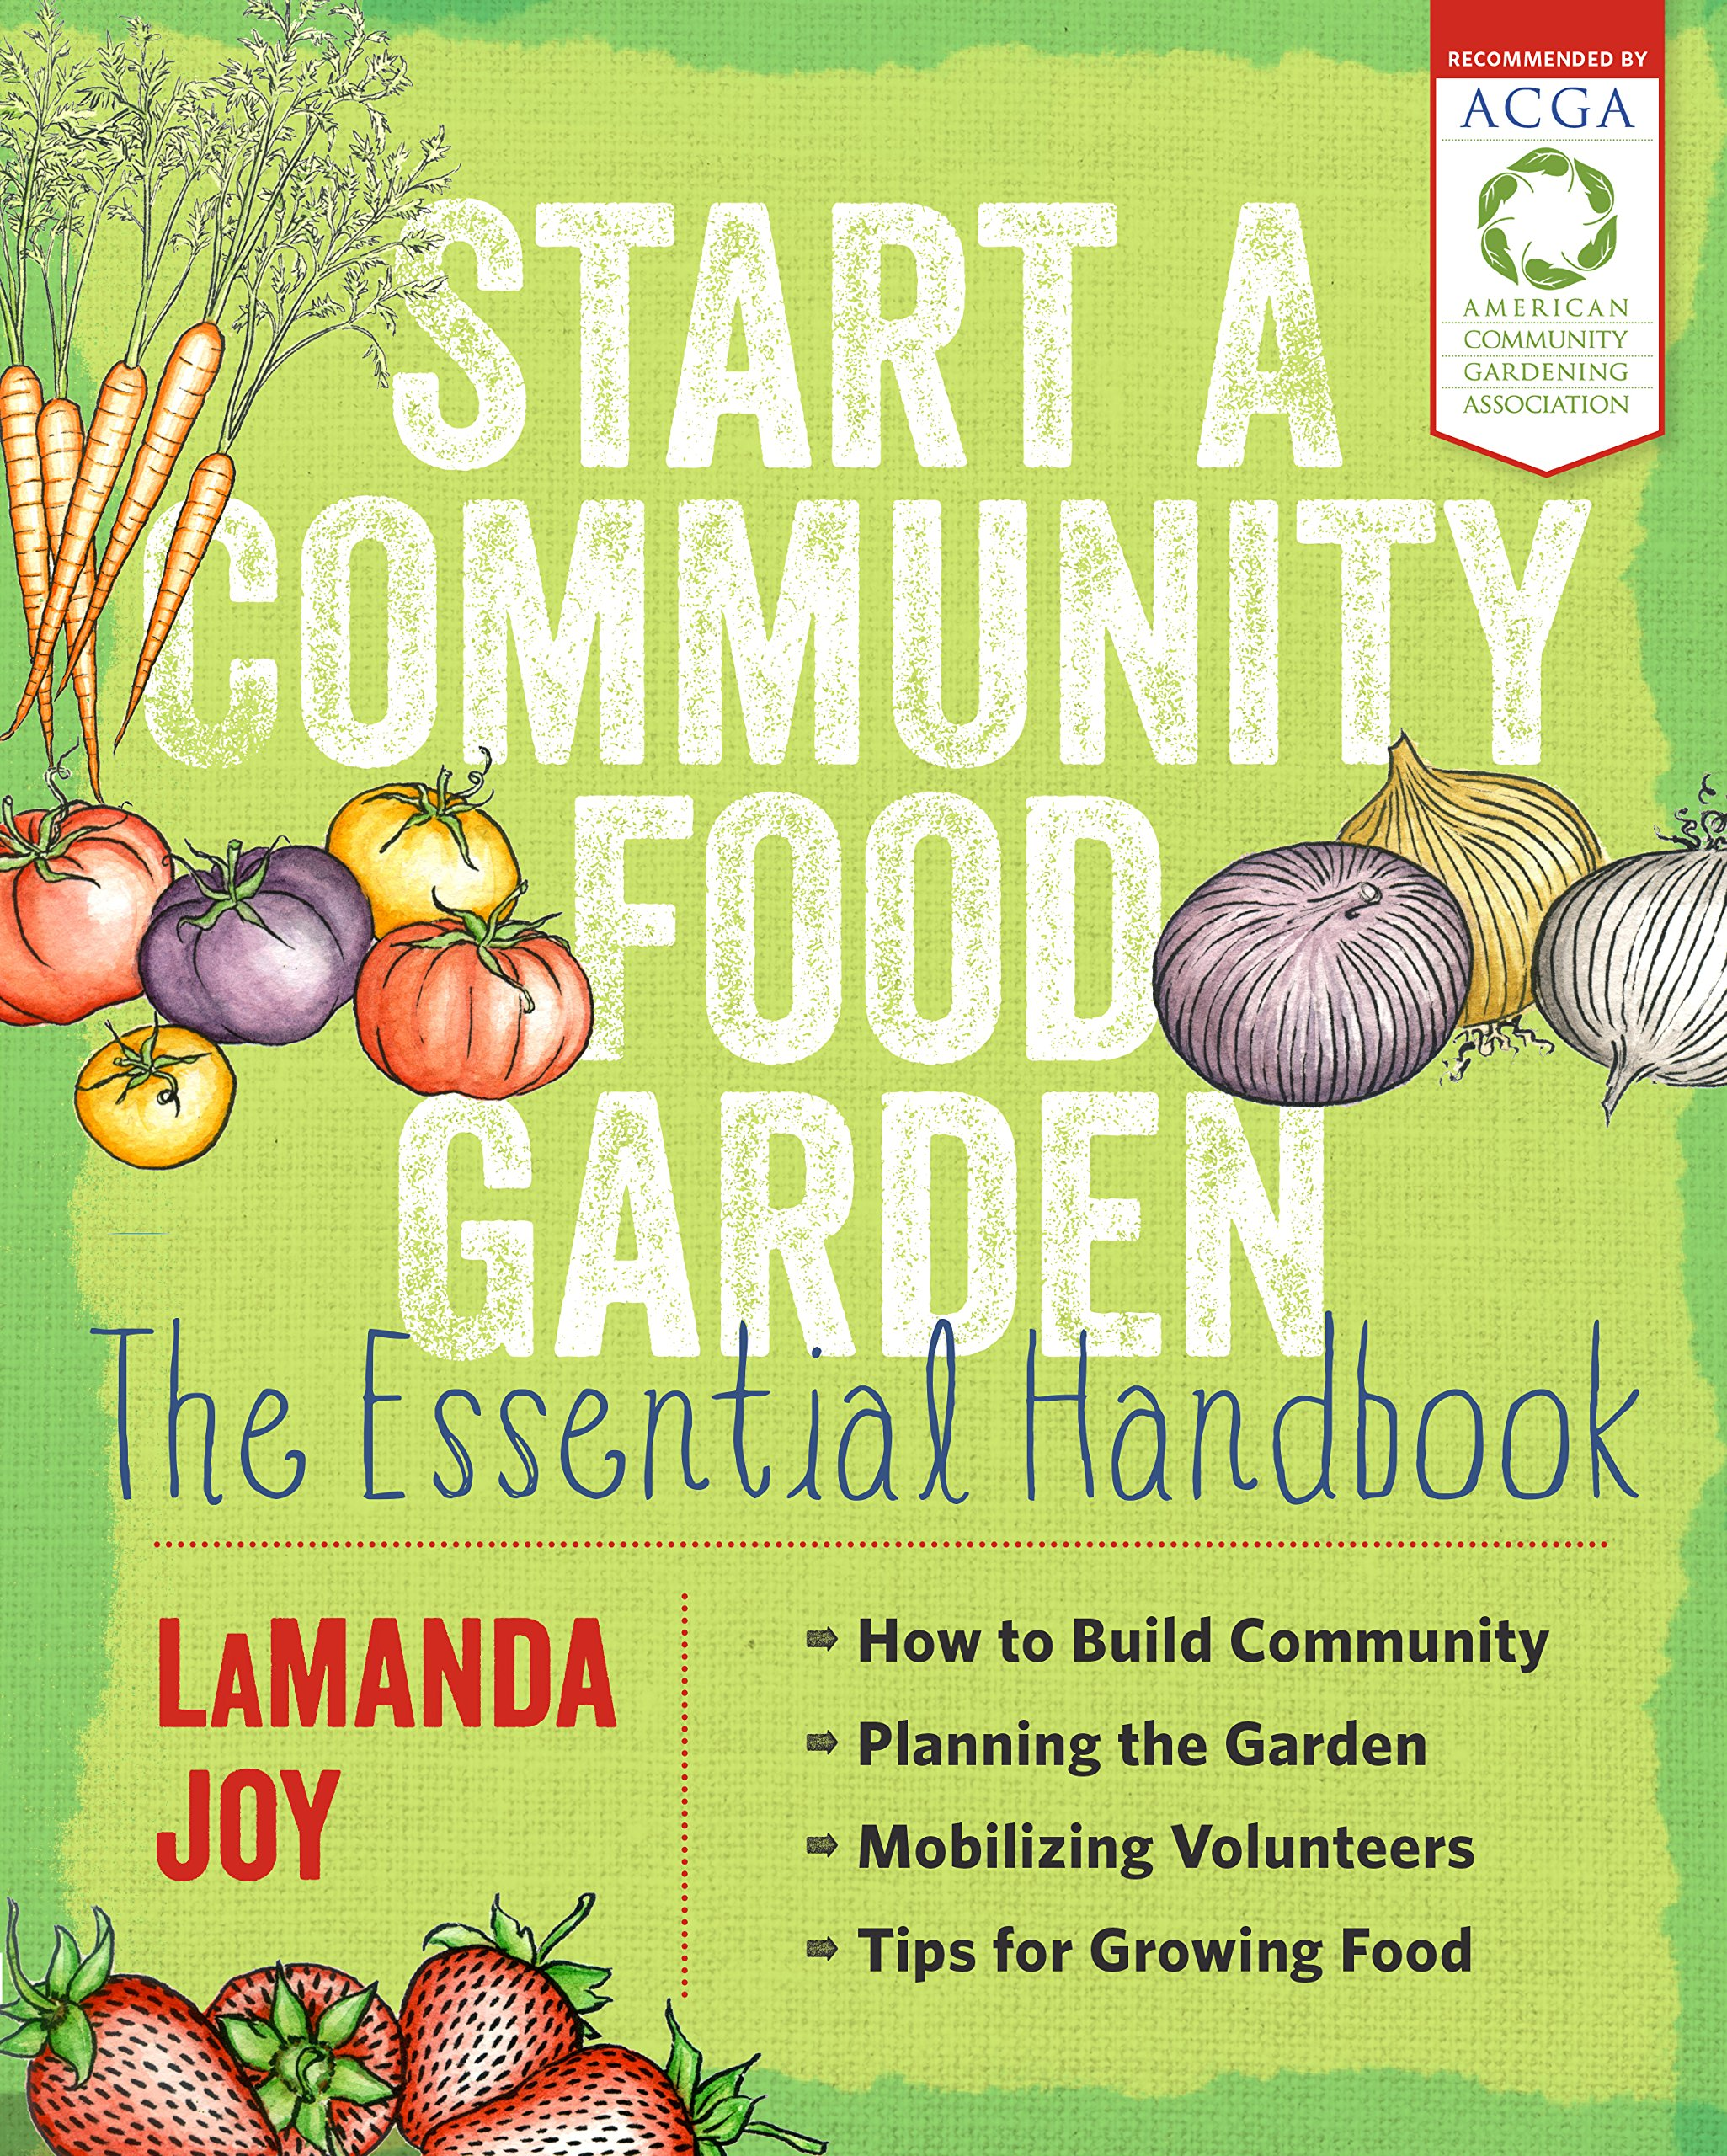 Food garden pictures - Start A Community Food Garden The Essential Handbook Lamanda Joy 9781604694840 Amazon Com Books